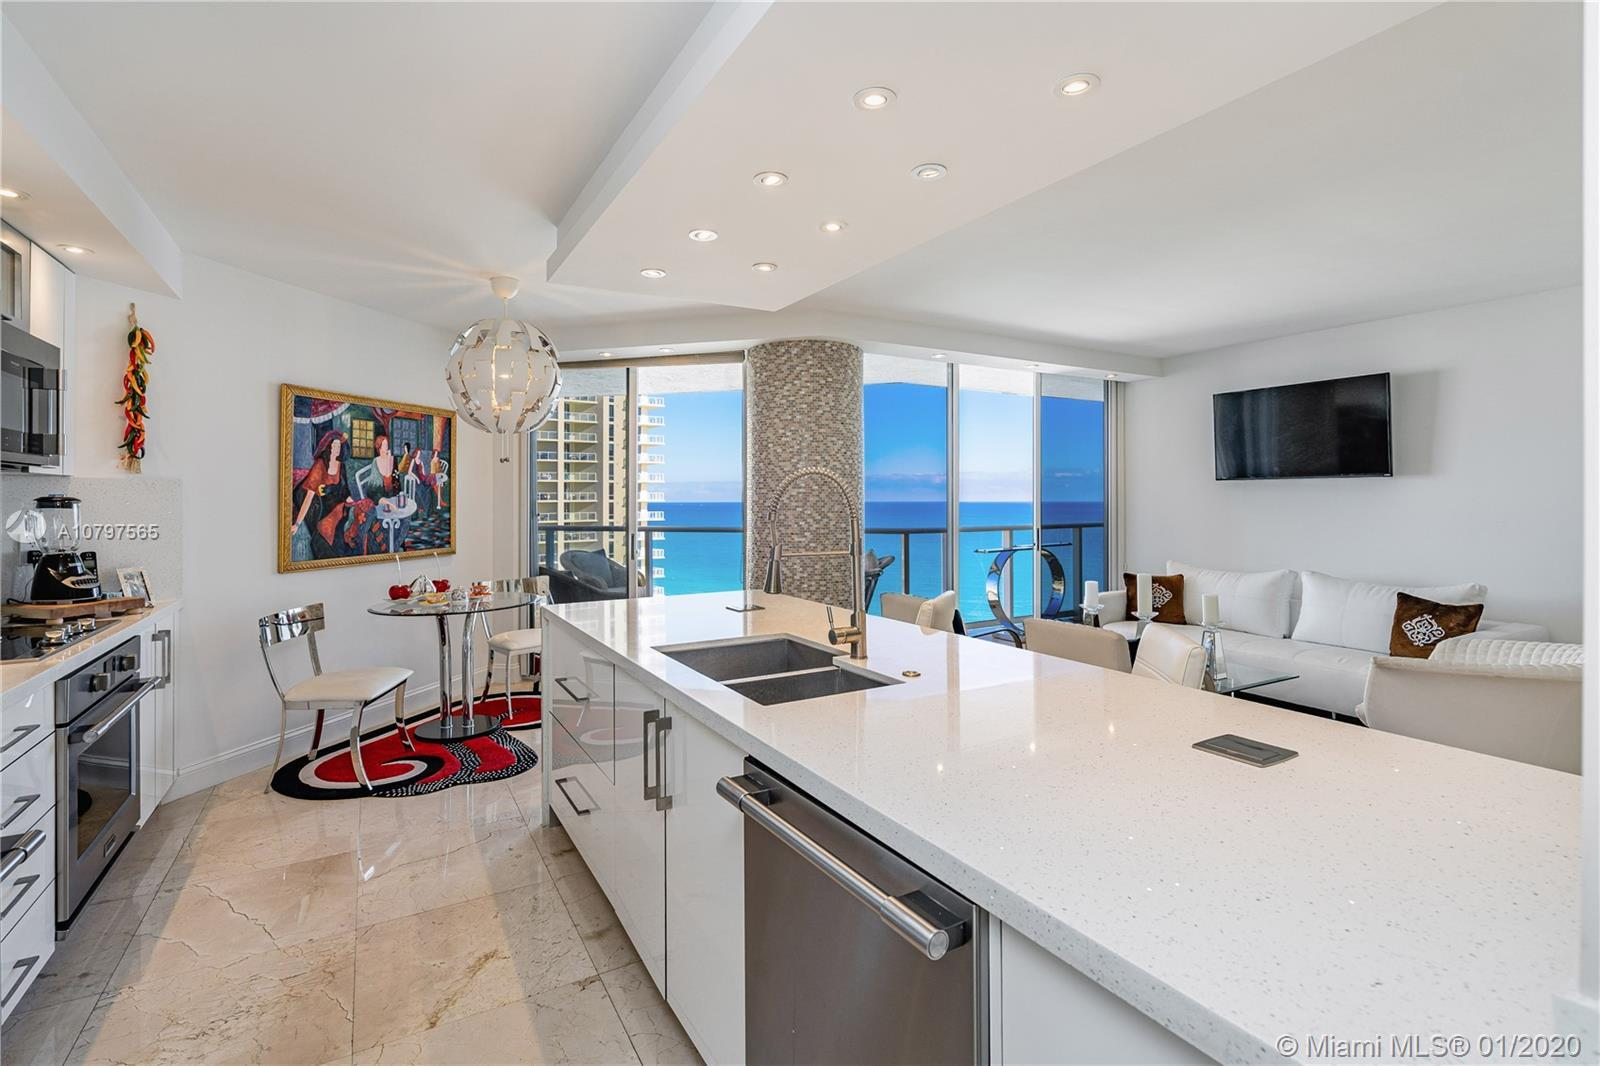 One of a kind remodeling of this oceanfront condo in the 24th floor, offering breathtaking direct oc